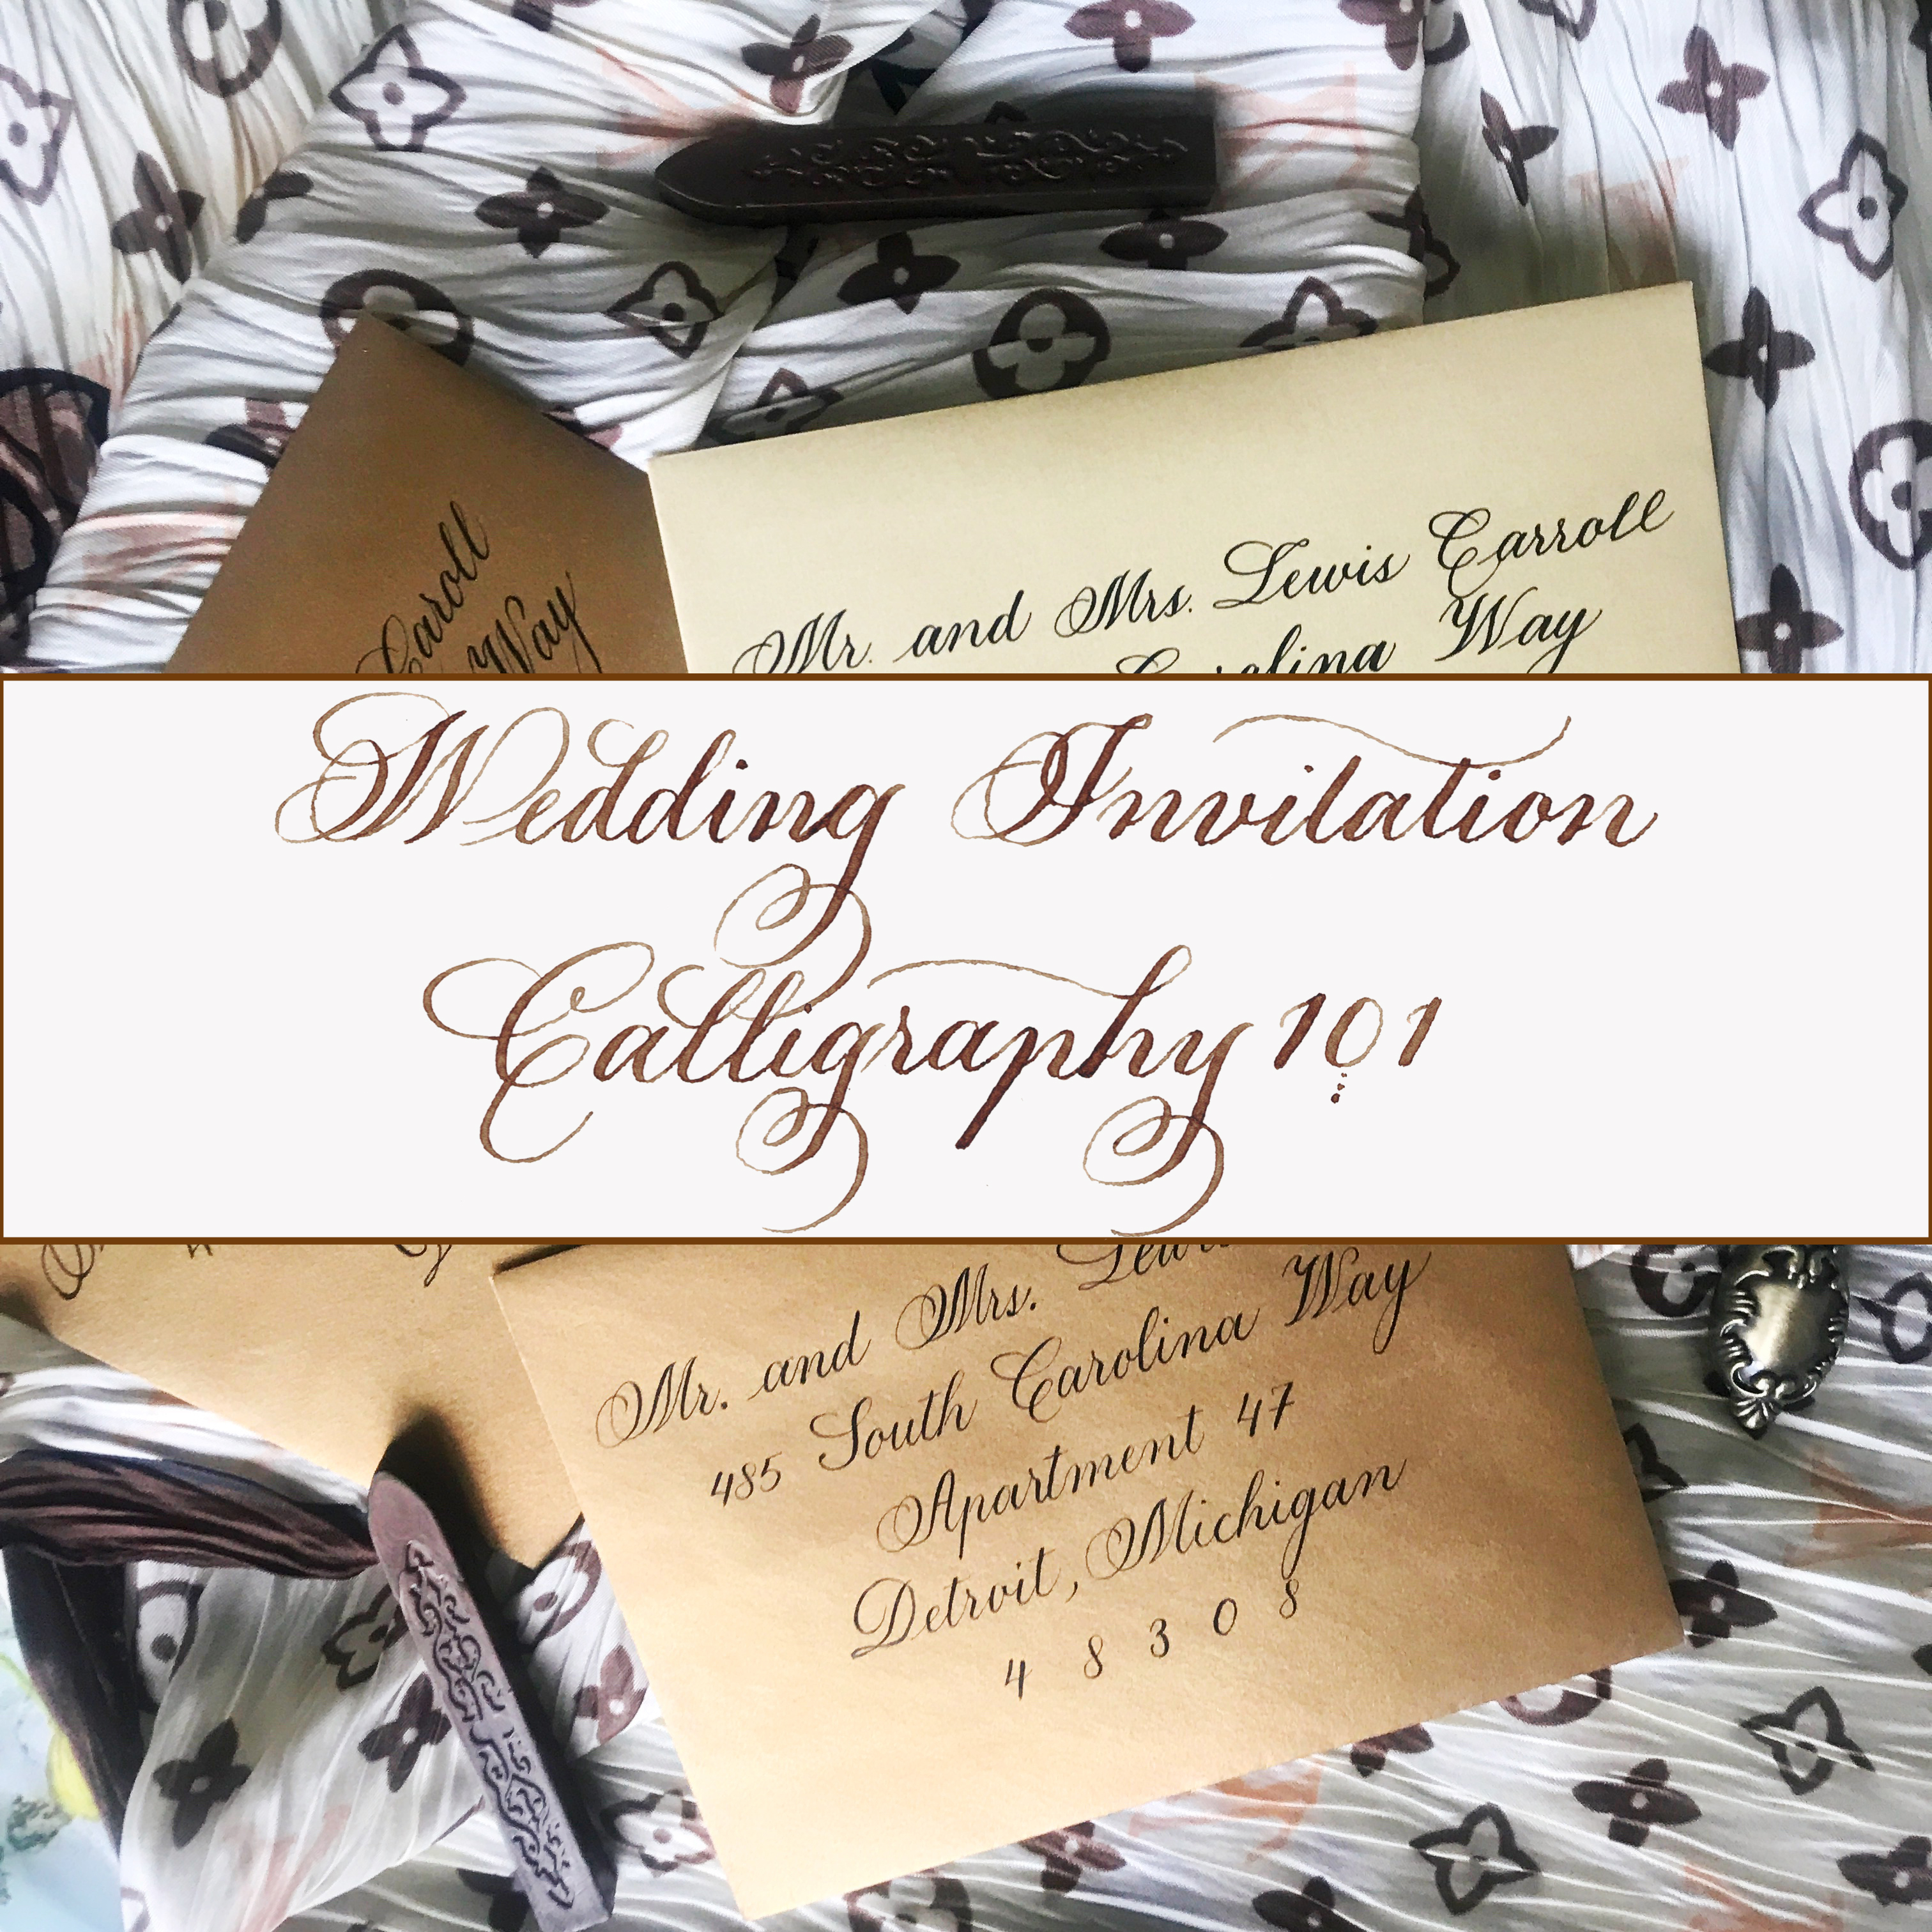 Wedding Invitation Calligraphy 101 - Everything you Need to Know